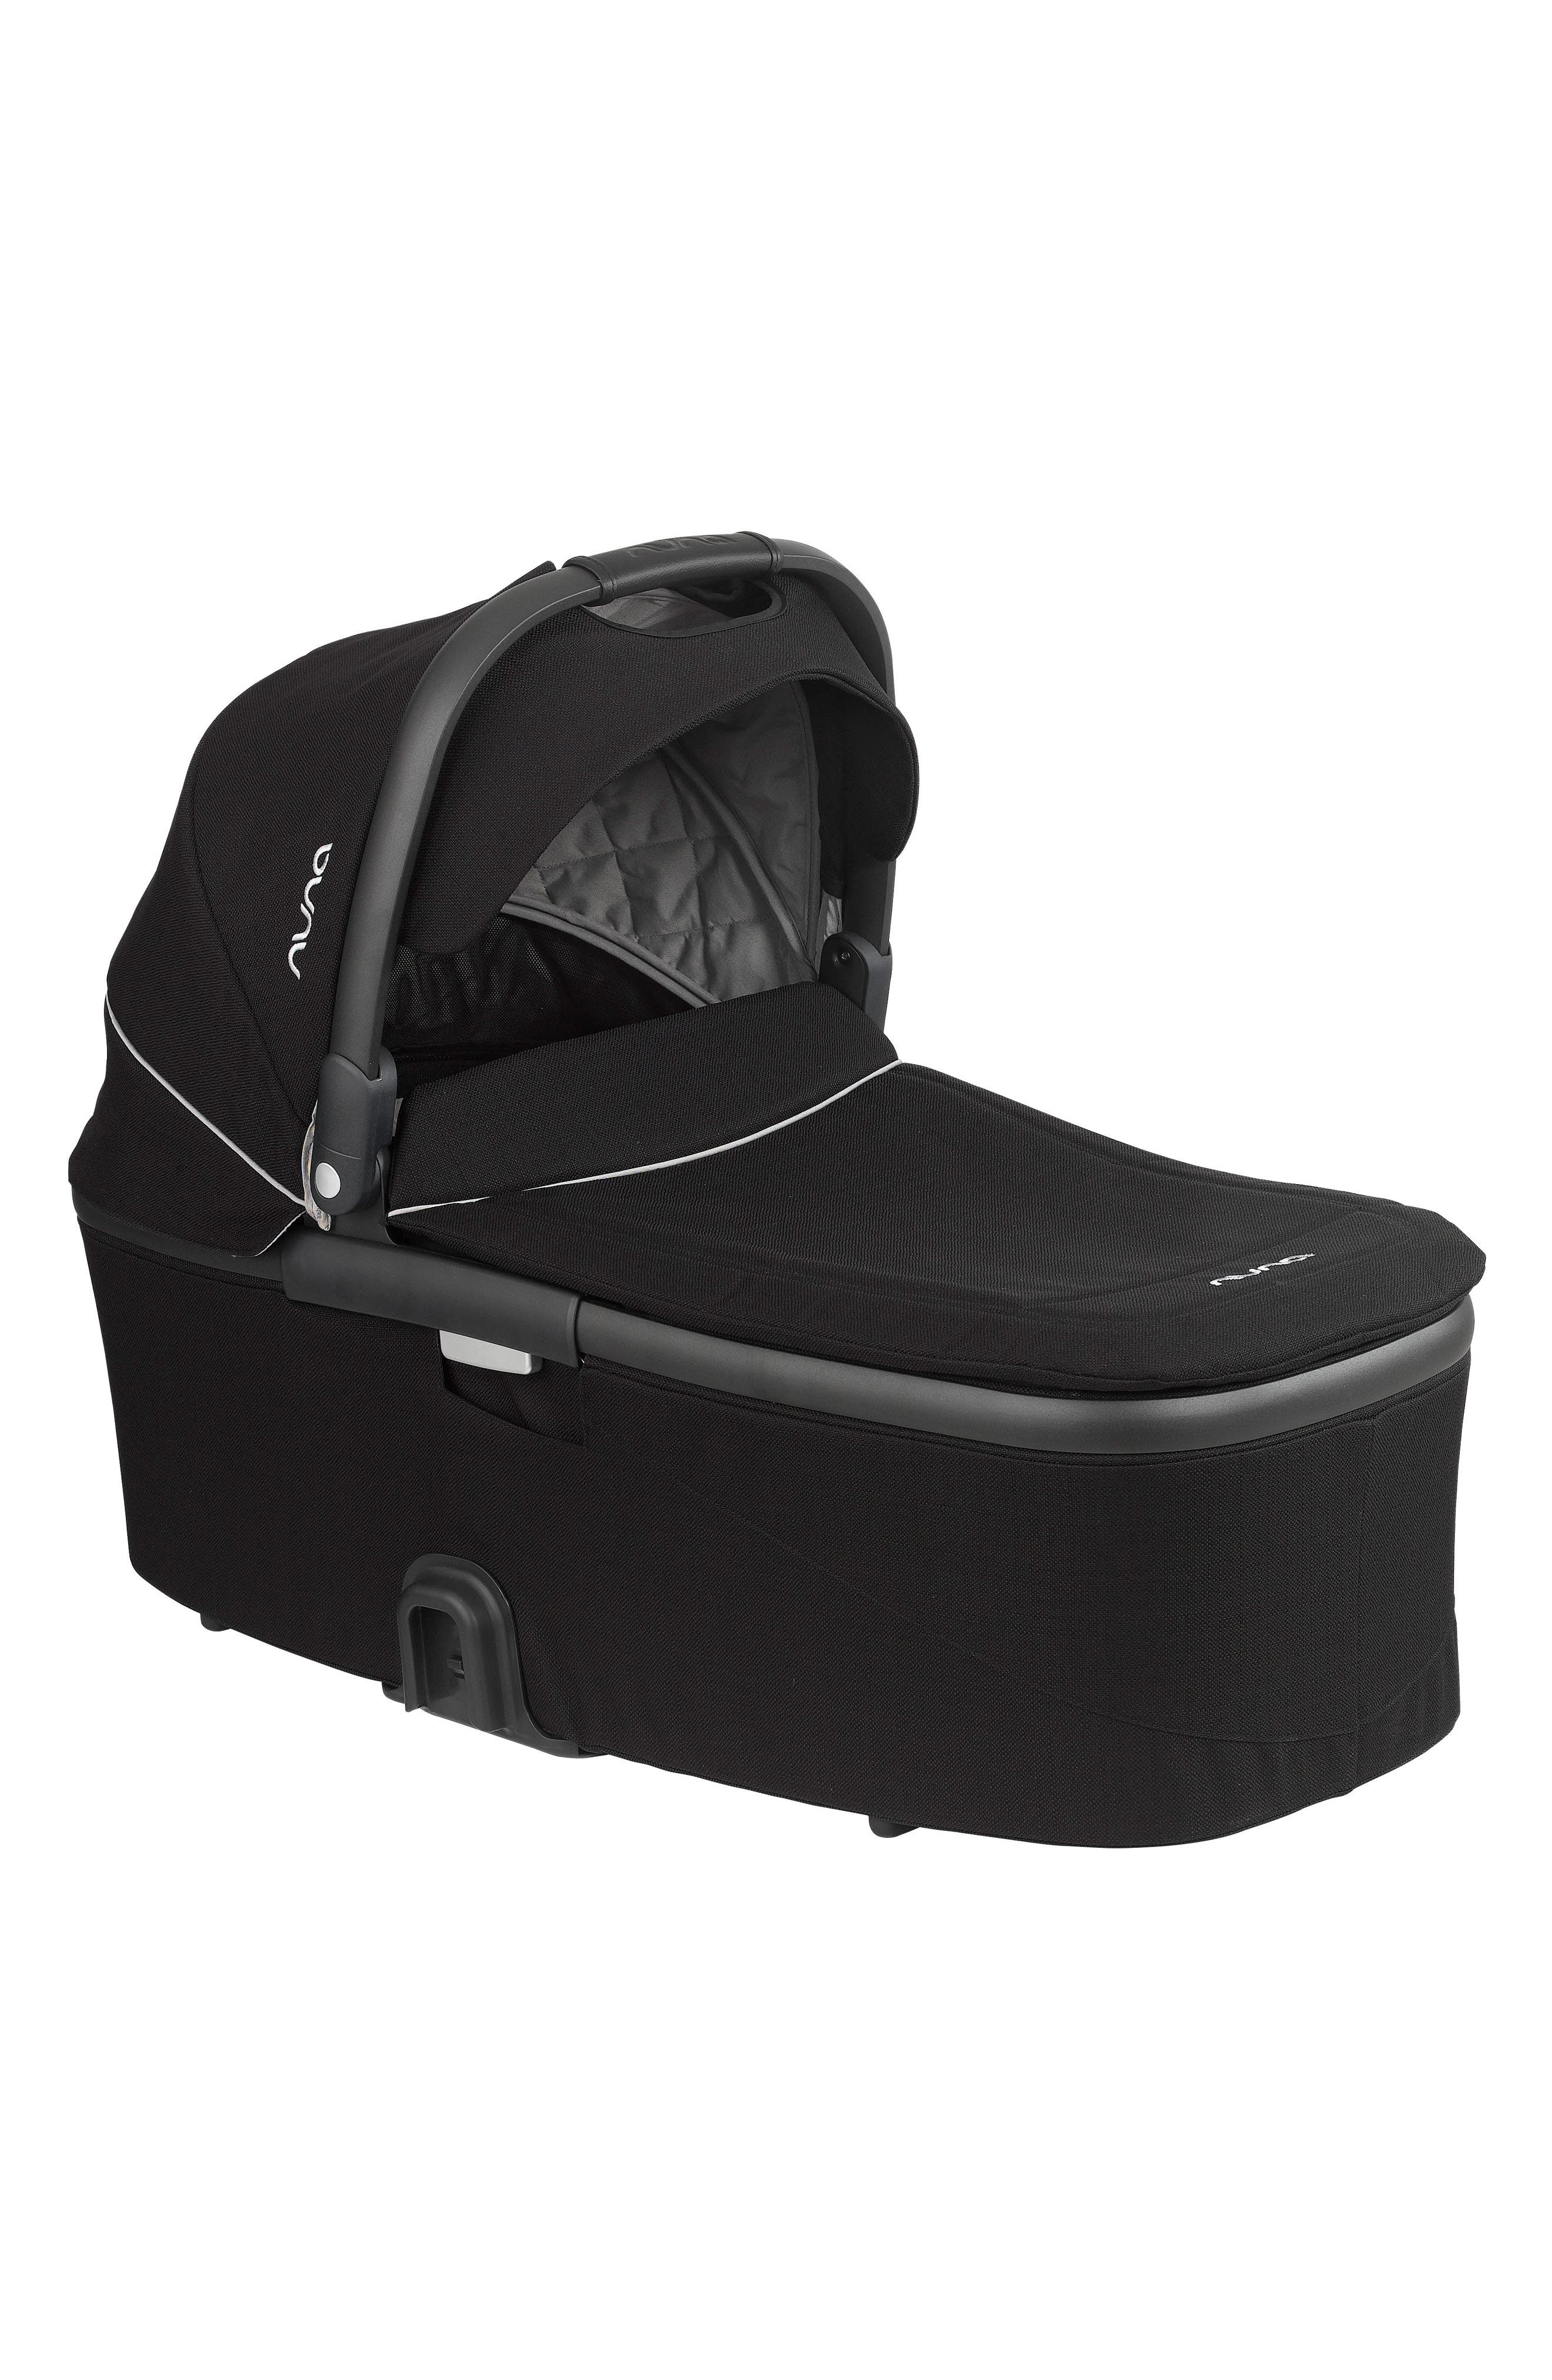 MIXX Bassinet for nuna MIXX Stroller,                         Main,                         color, 001